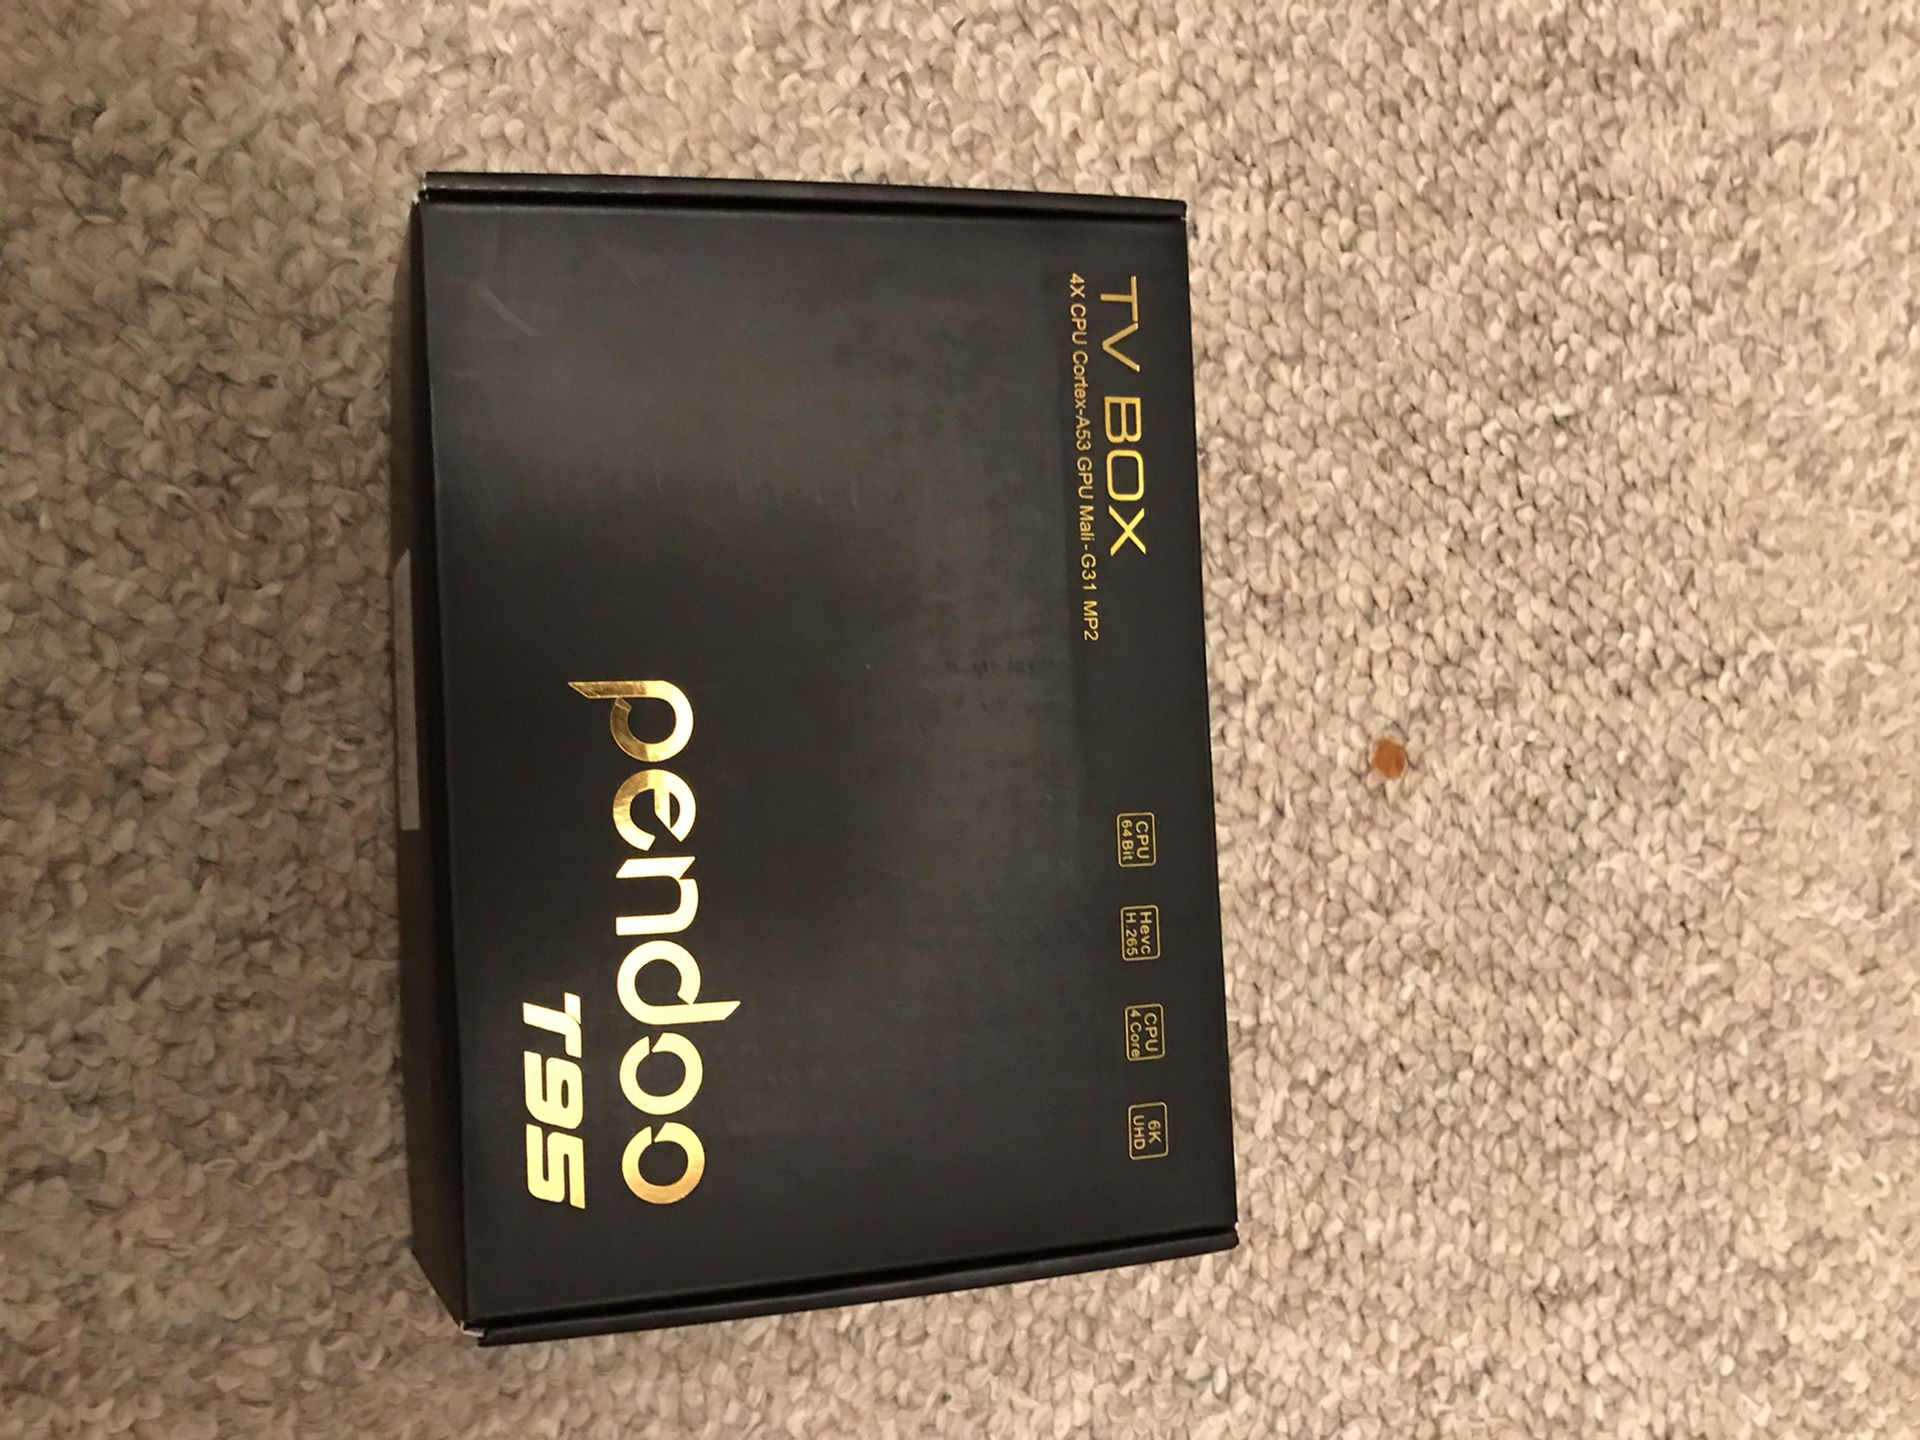 Pendoo T95 high end android box